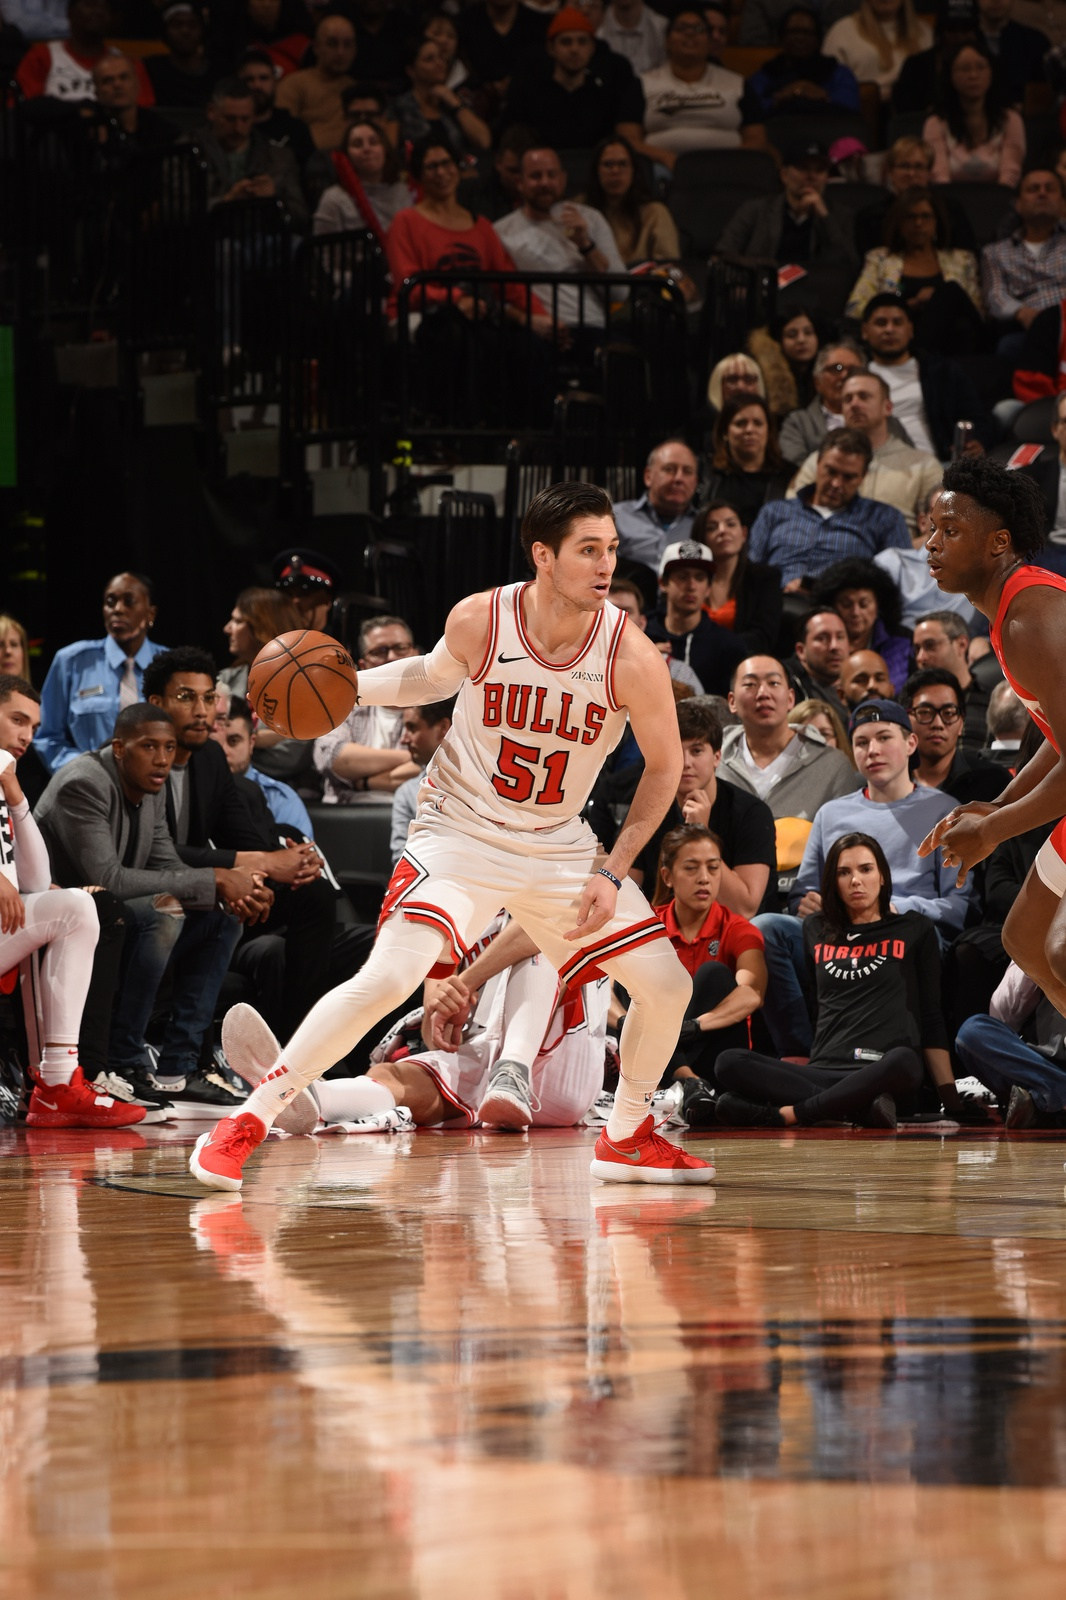 Ryan Arcidiacono #51 of the Chicago Bulls handles the ball against the Toronto Raptors on March 26, 2019 at the Scotiabank Arena in Toronto, Ontario, Canada.